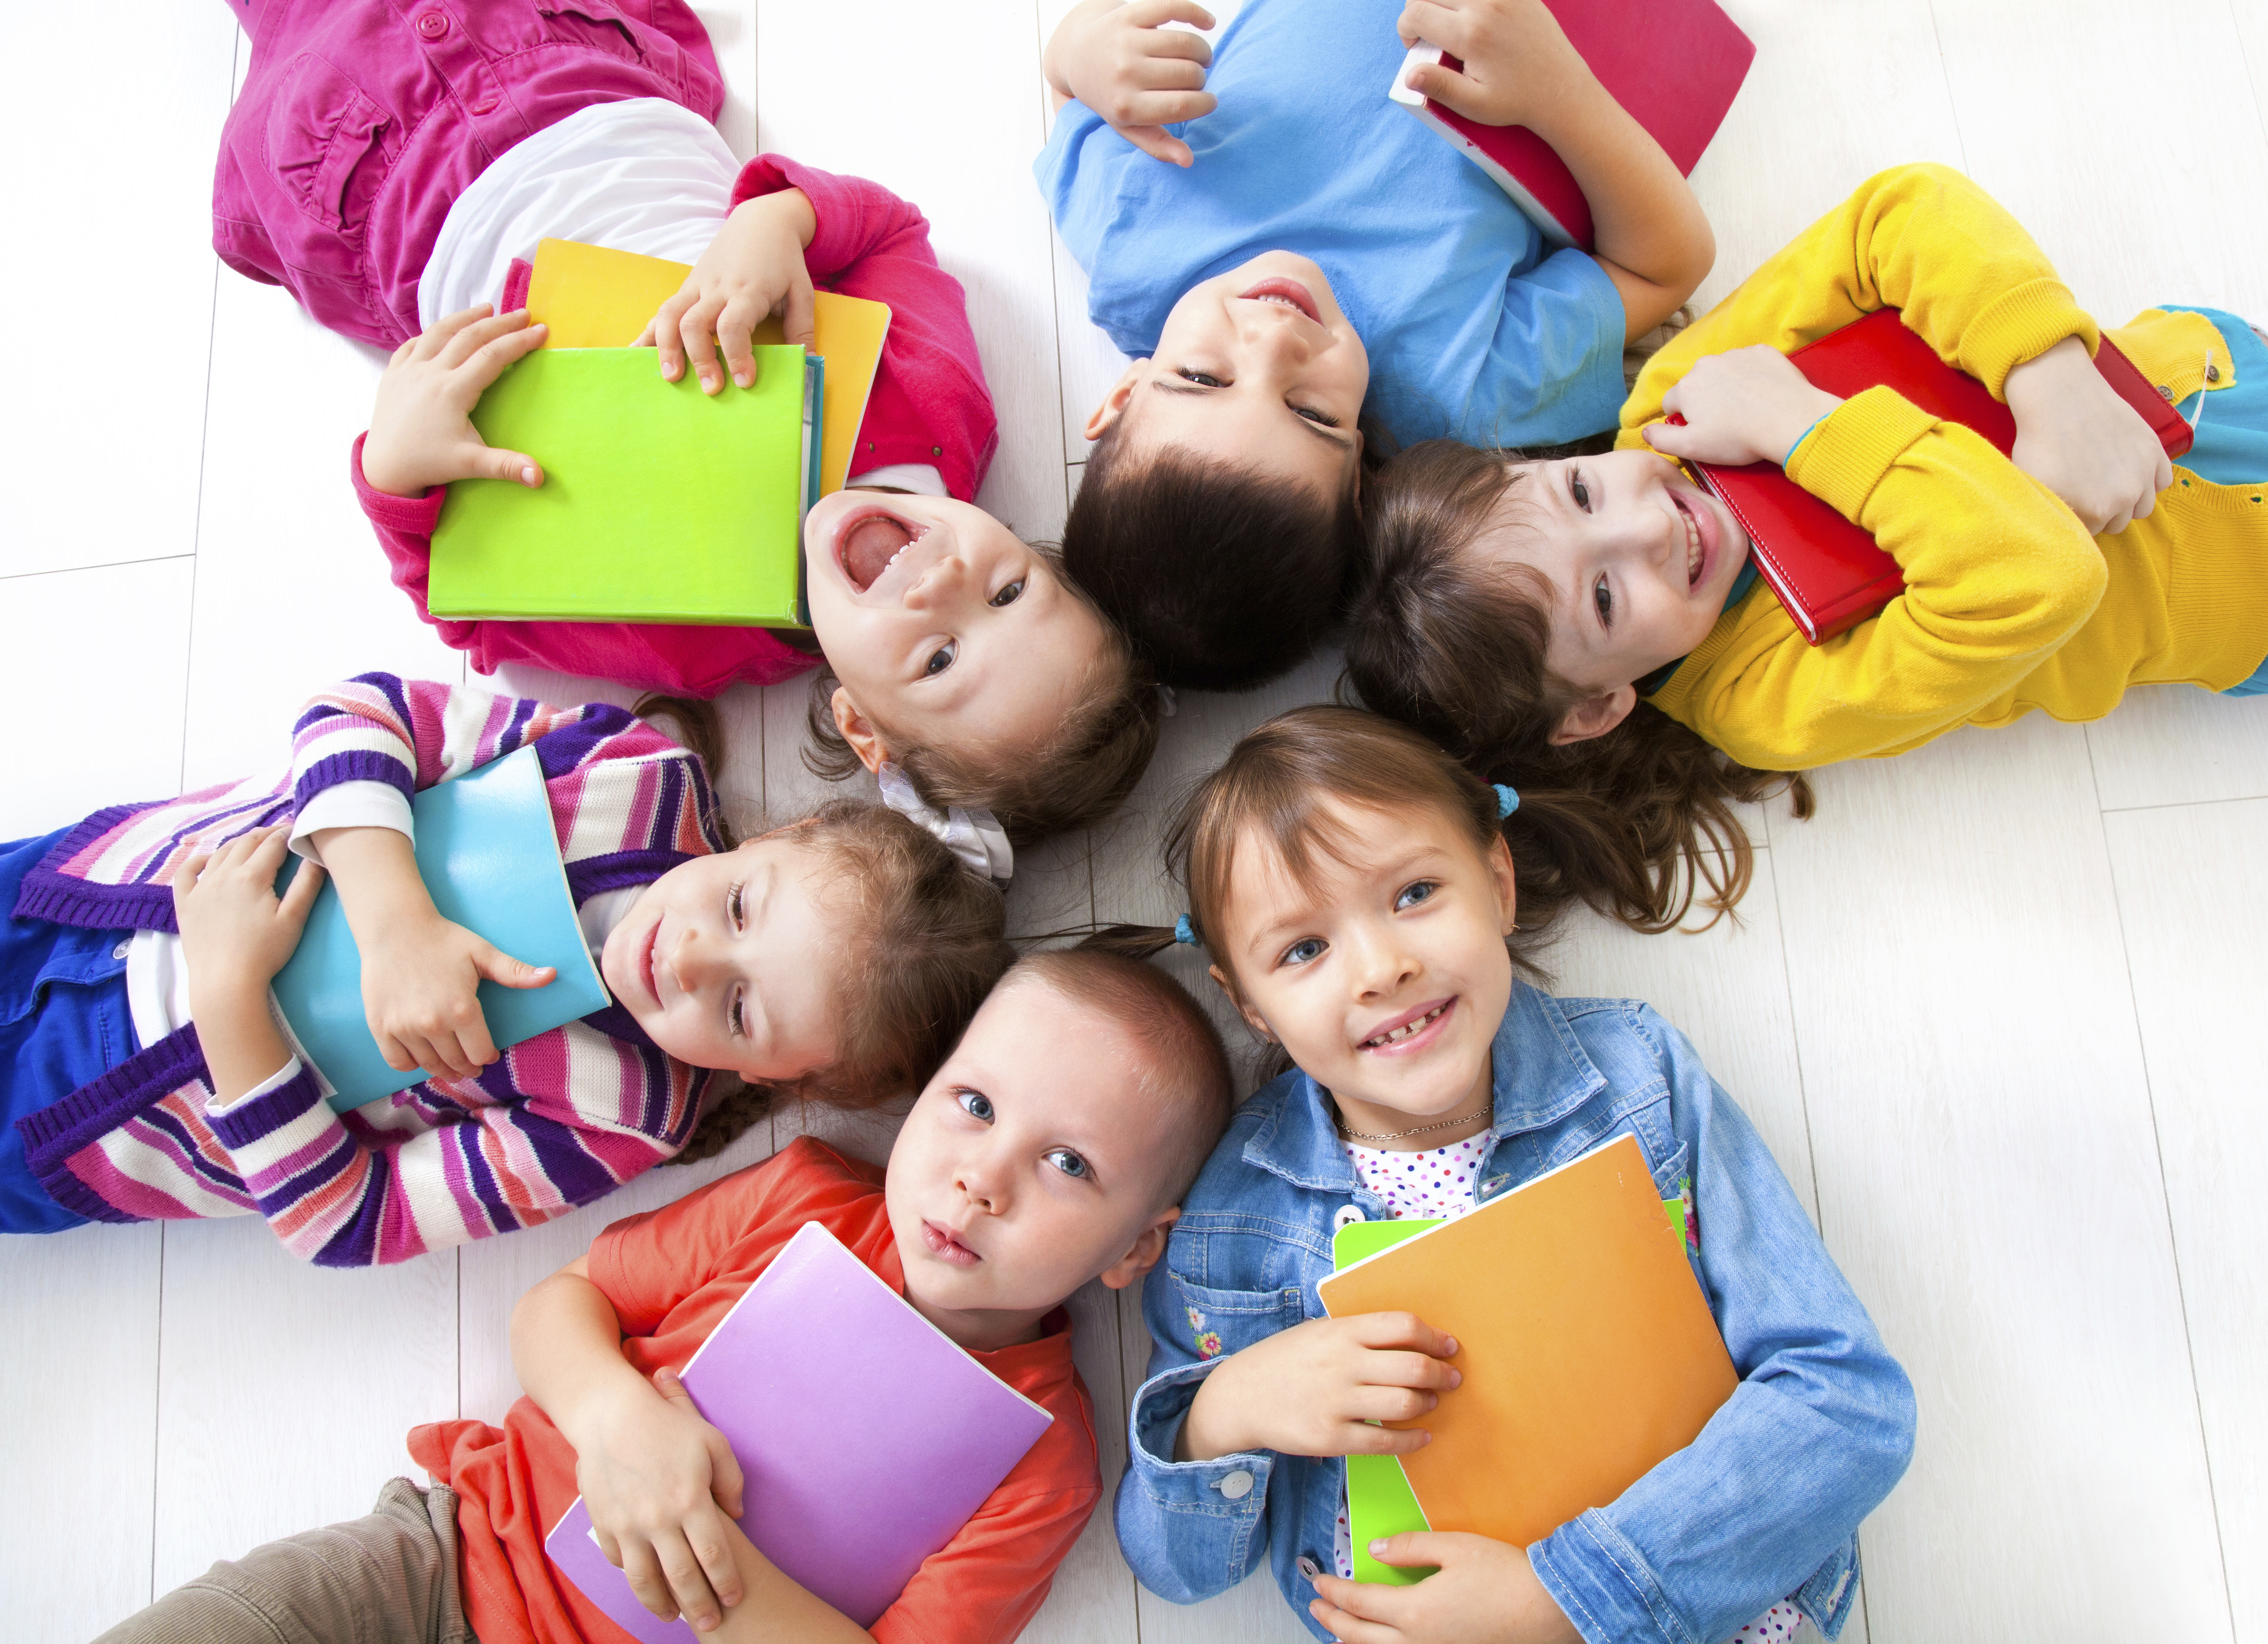 Children, Happy to Study